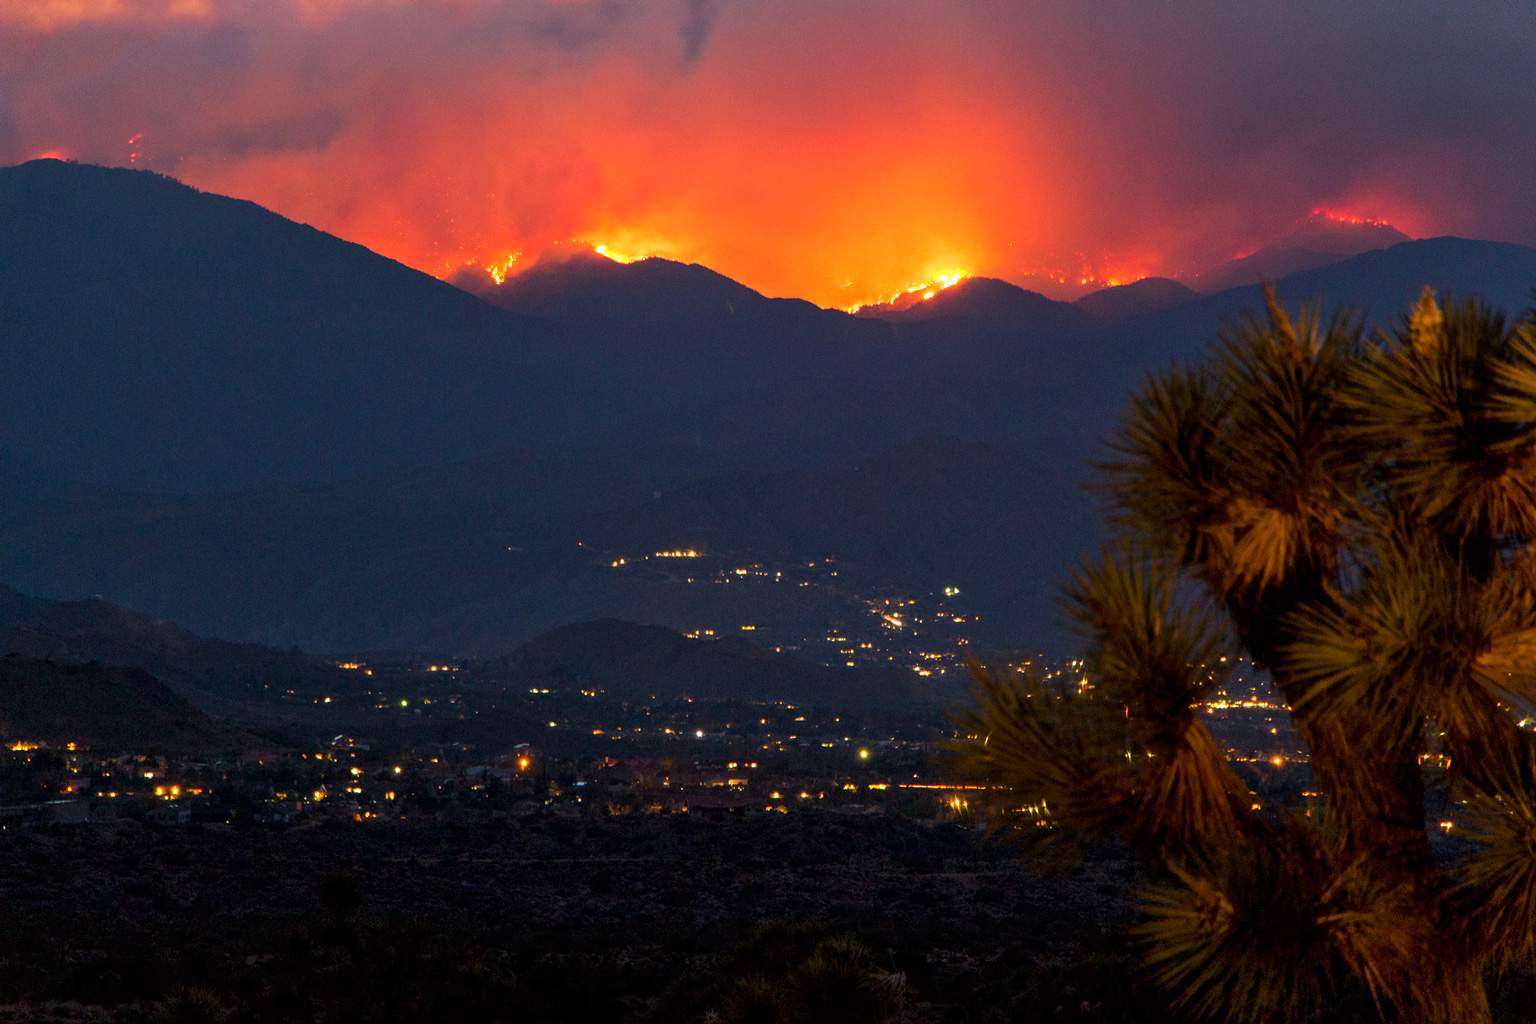 Fire and smoke from the June 2015 Lake Fire above Yucca Valley, California.